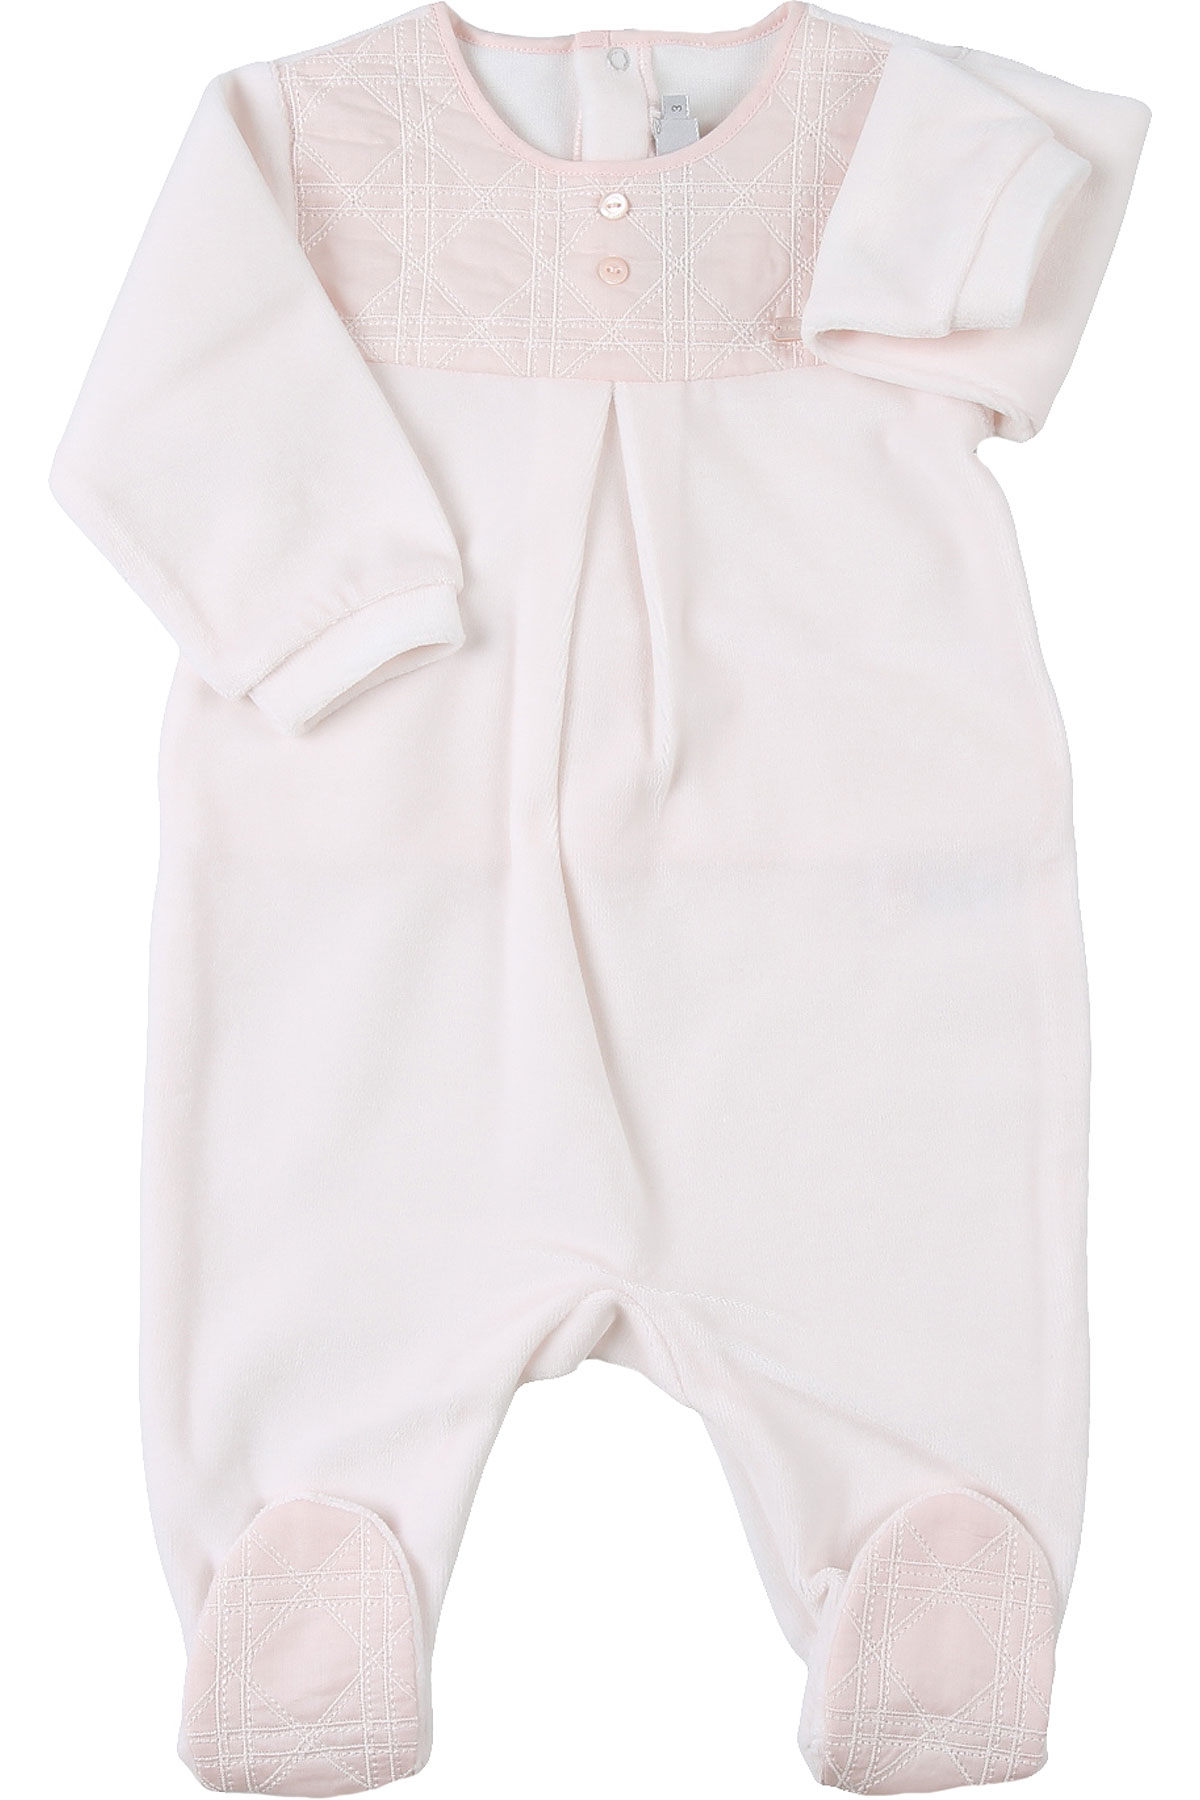 Baby Dior Baby Bodysuits & Onesies for Girls On Sale, Pink, Cotton, 2019, 1M 3M 6M